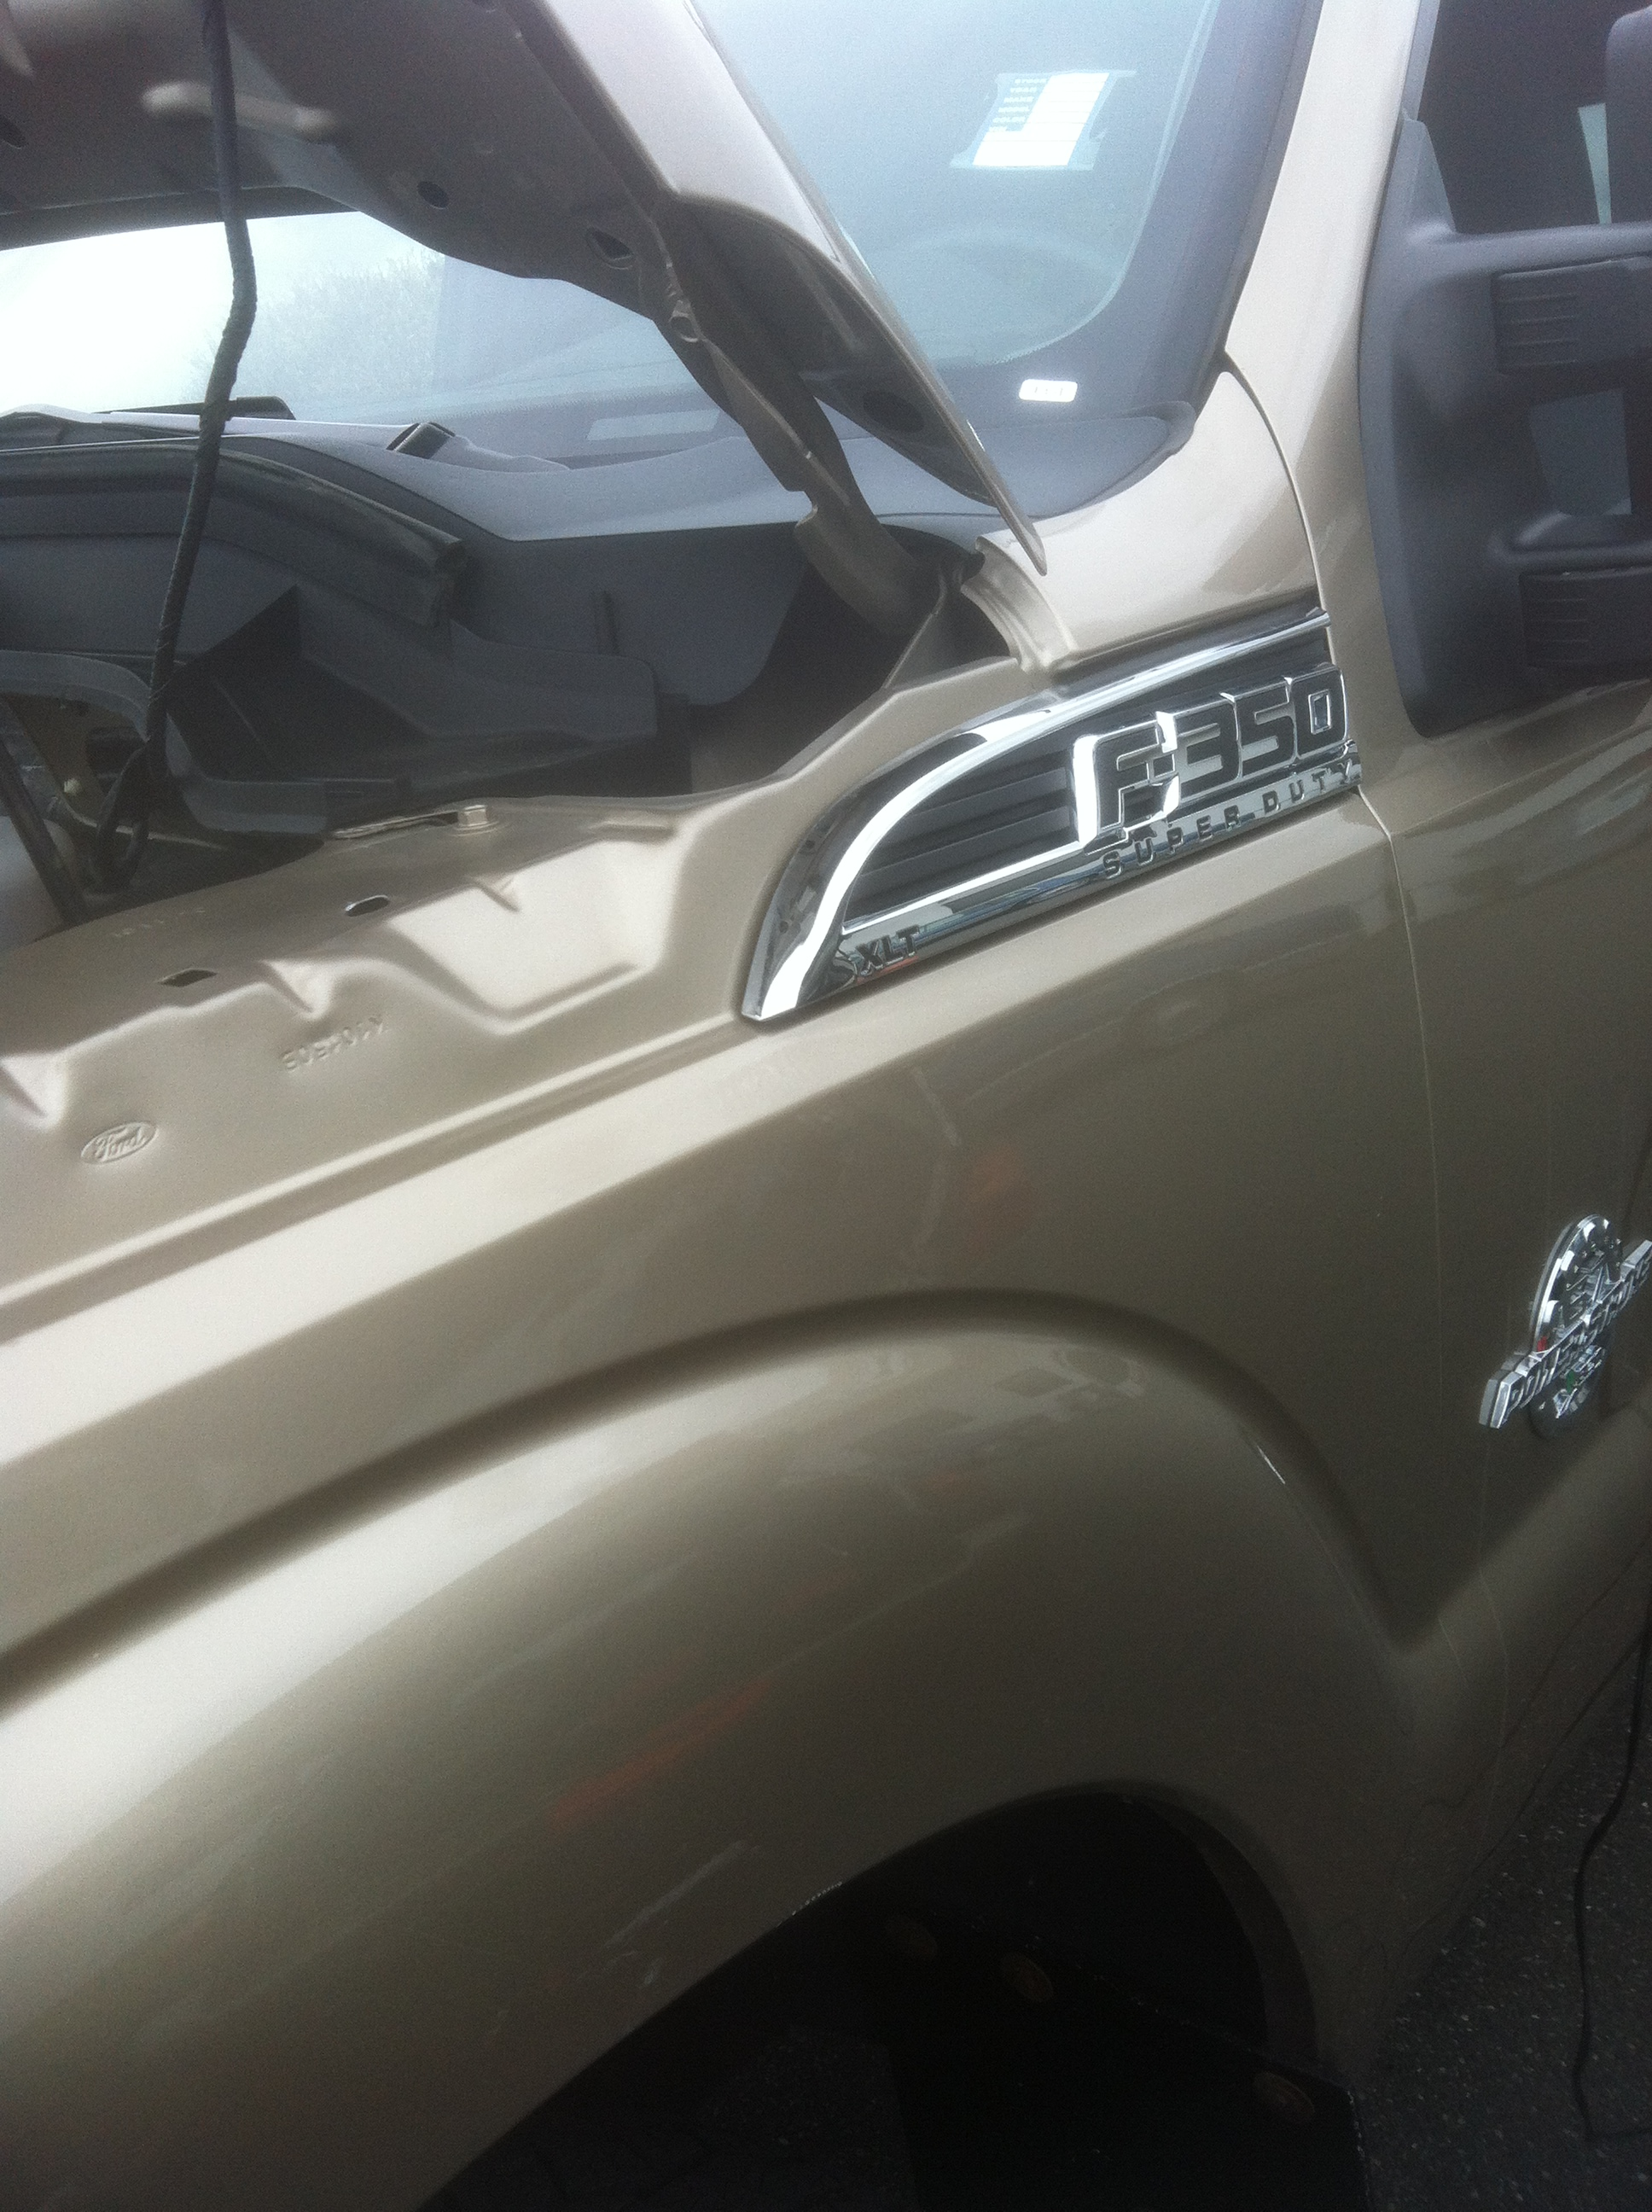 F350 Dent After